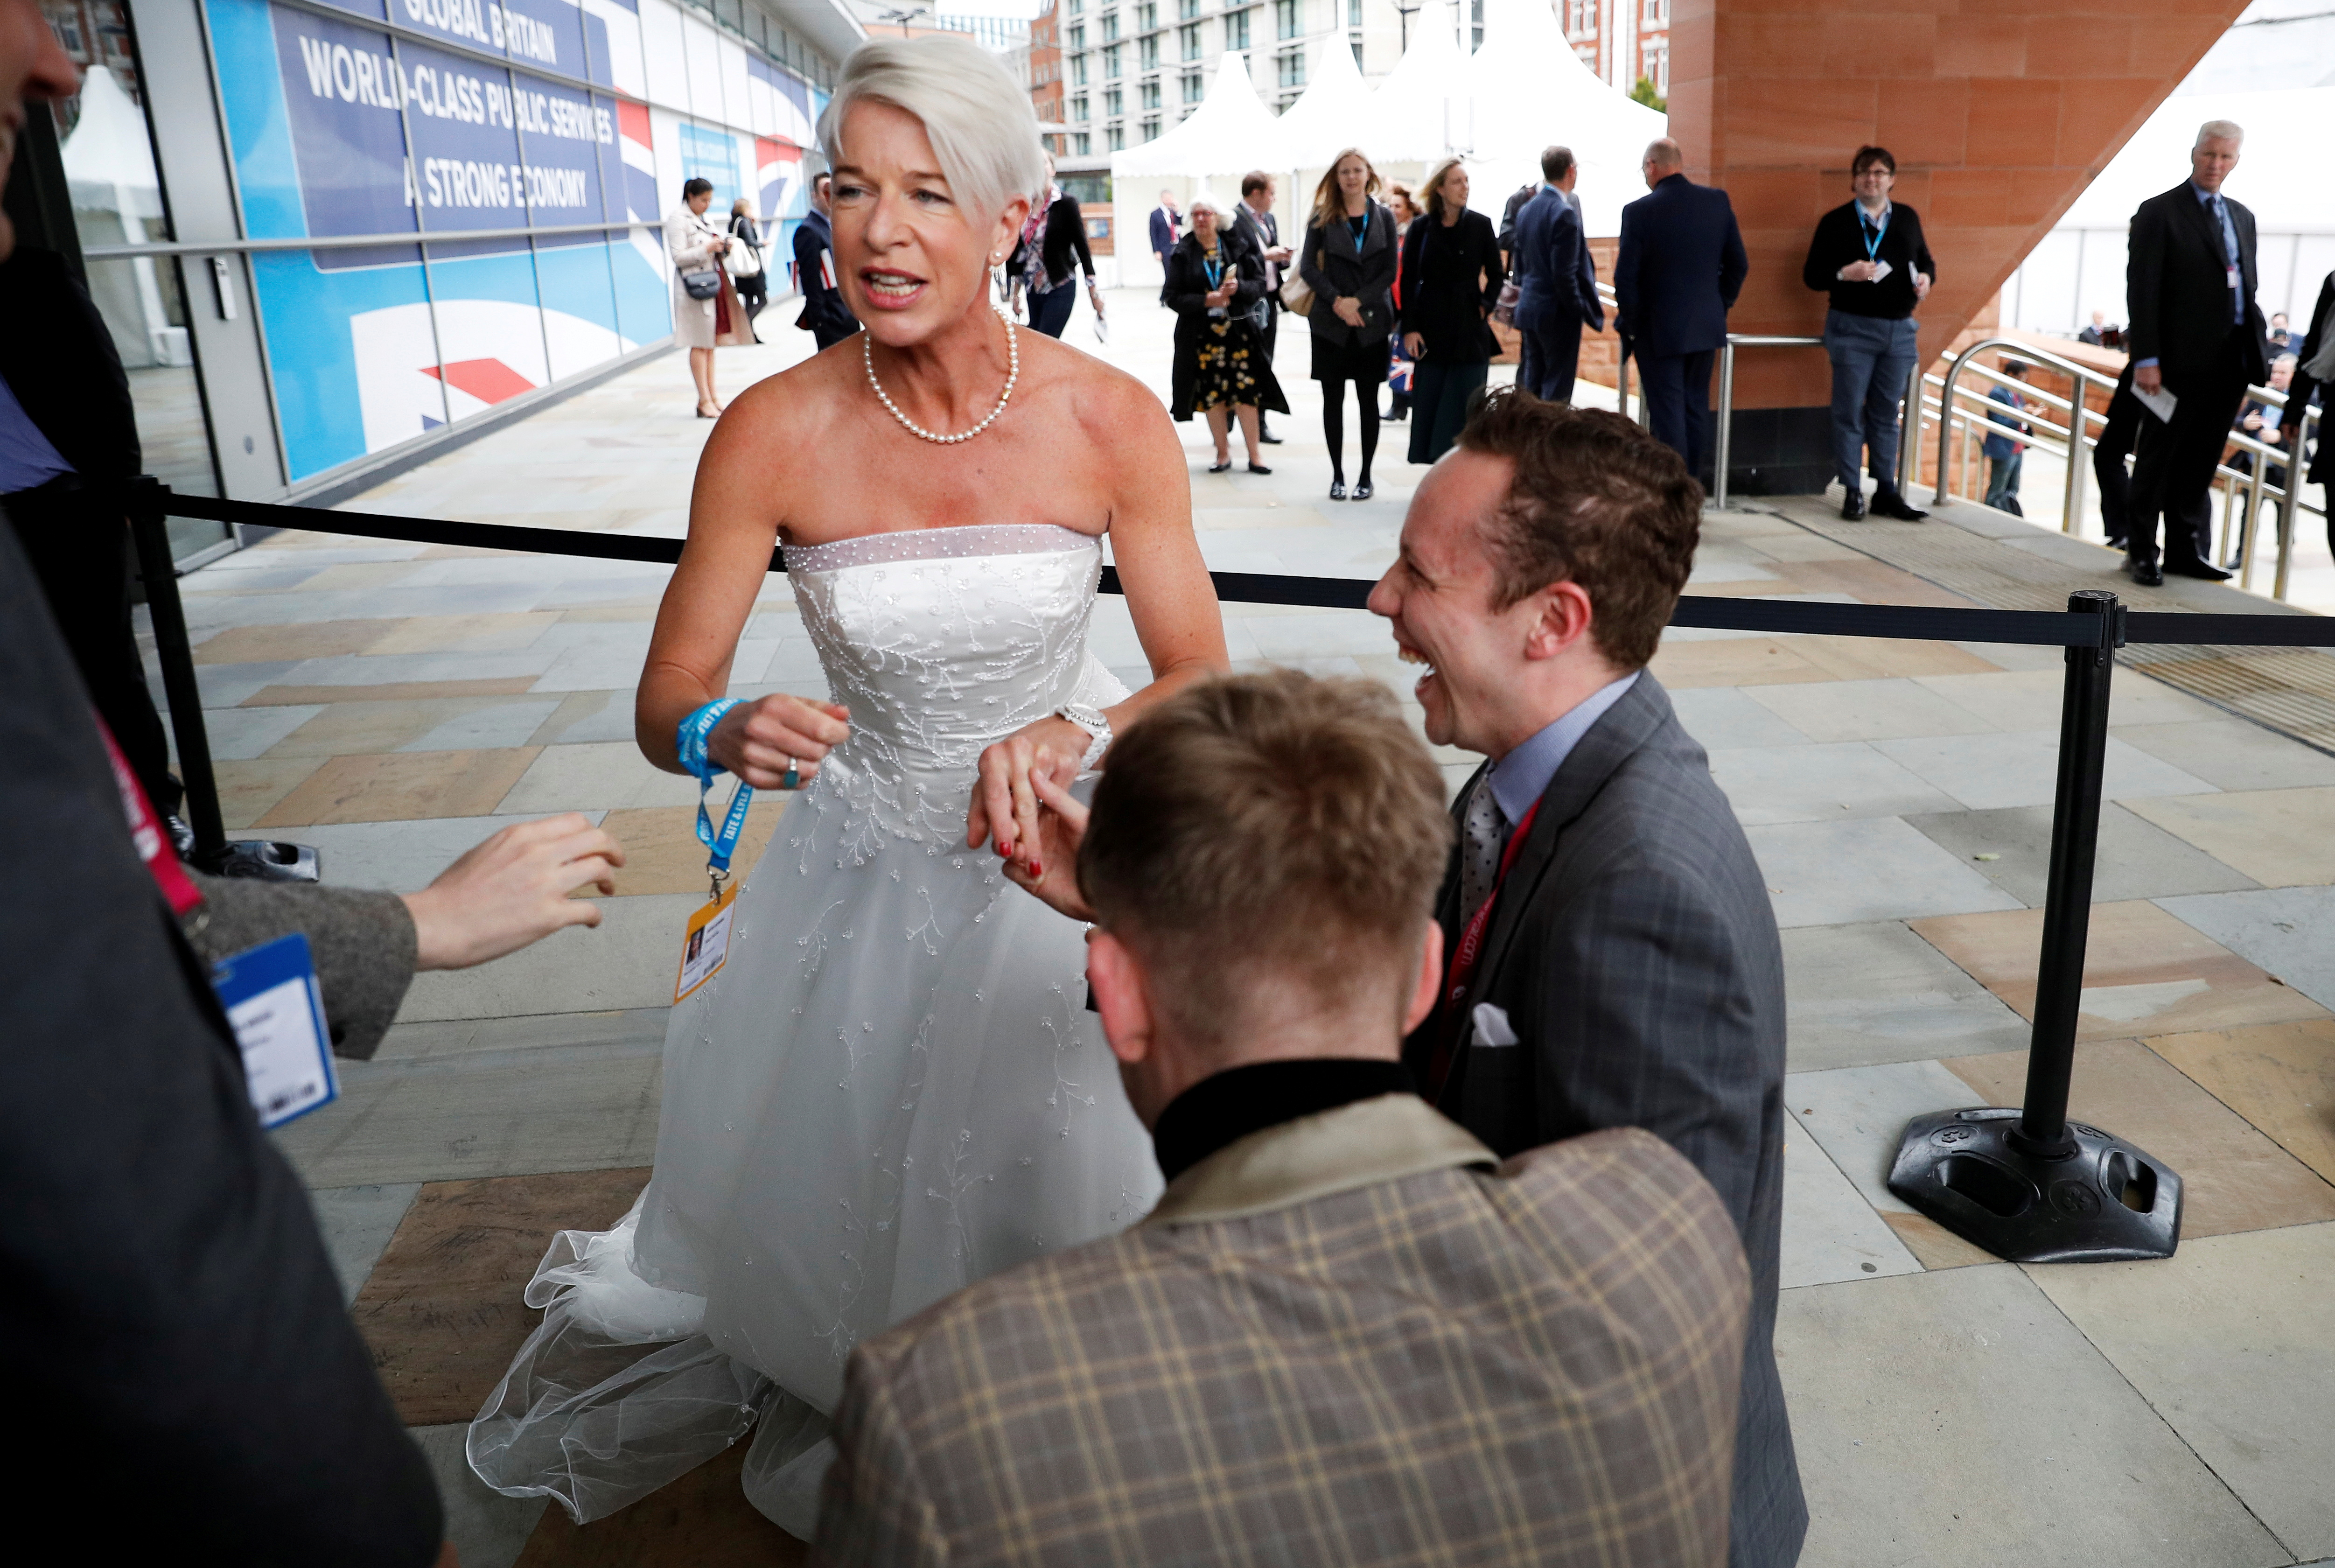 Newspaper columnist Katie Hopkins arrives dressed in a wedding dress at the Conservative Party's conference in Manchester, Britain October 2, 2017. REUTERS/Phil Noble/File Photo